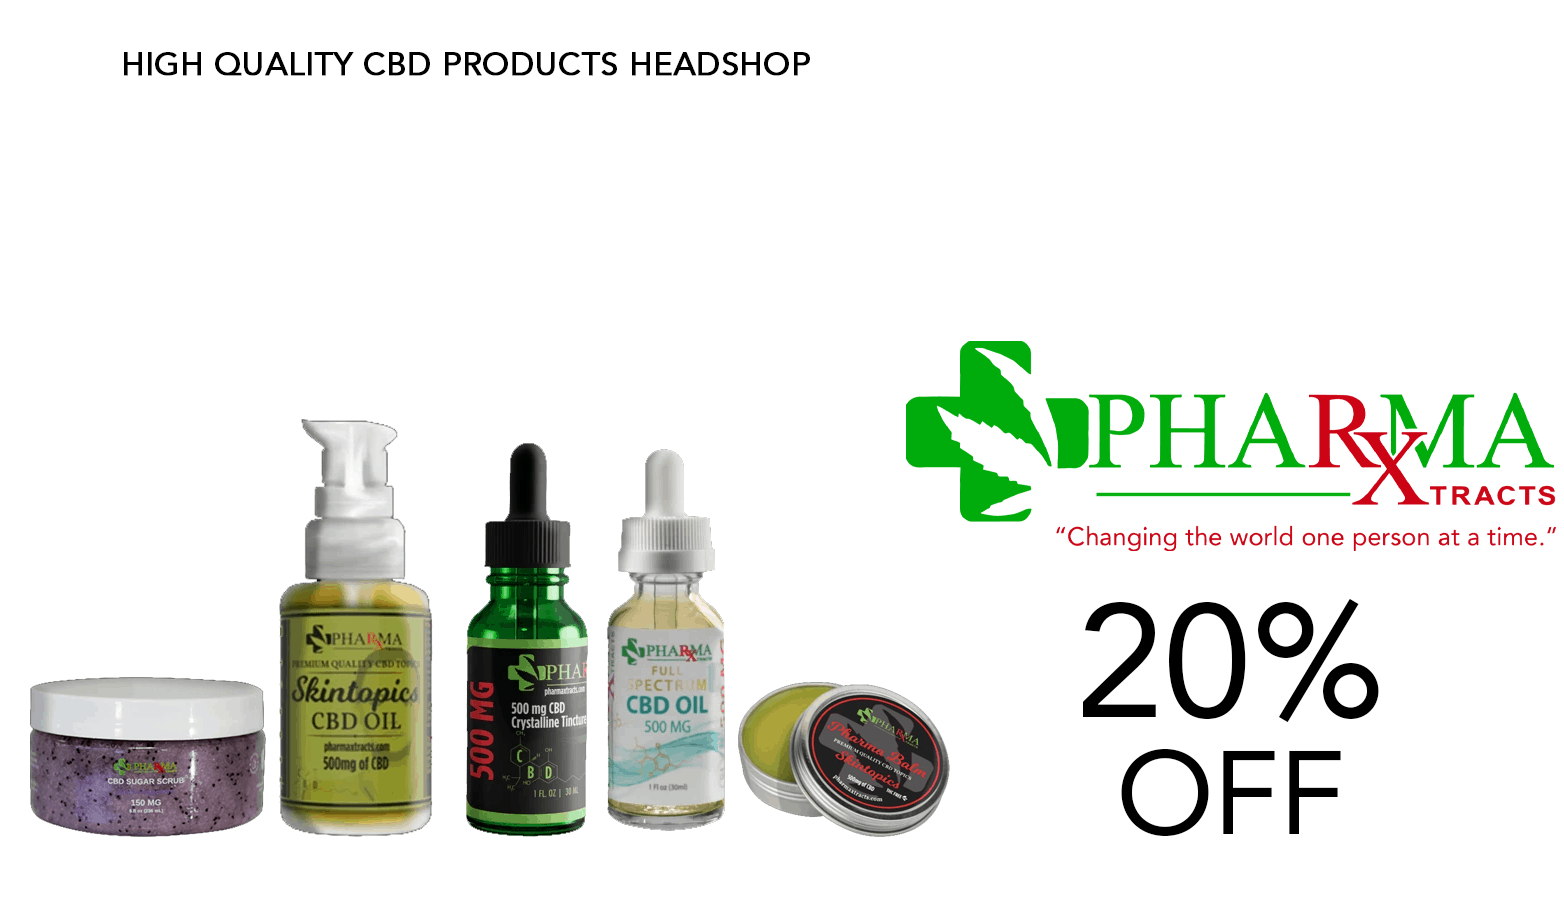 PharmaXtracts CBD Coupon Code Offer Website